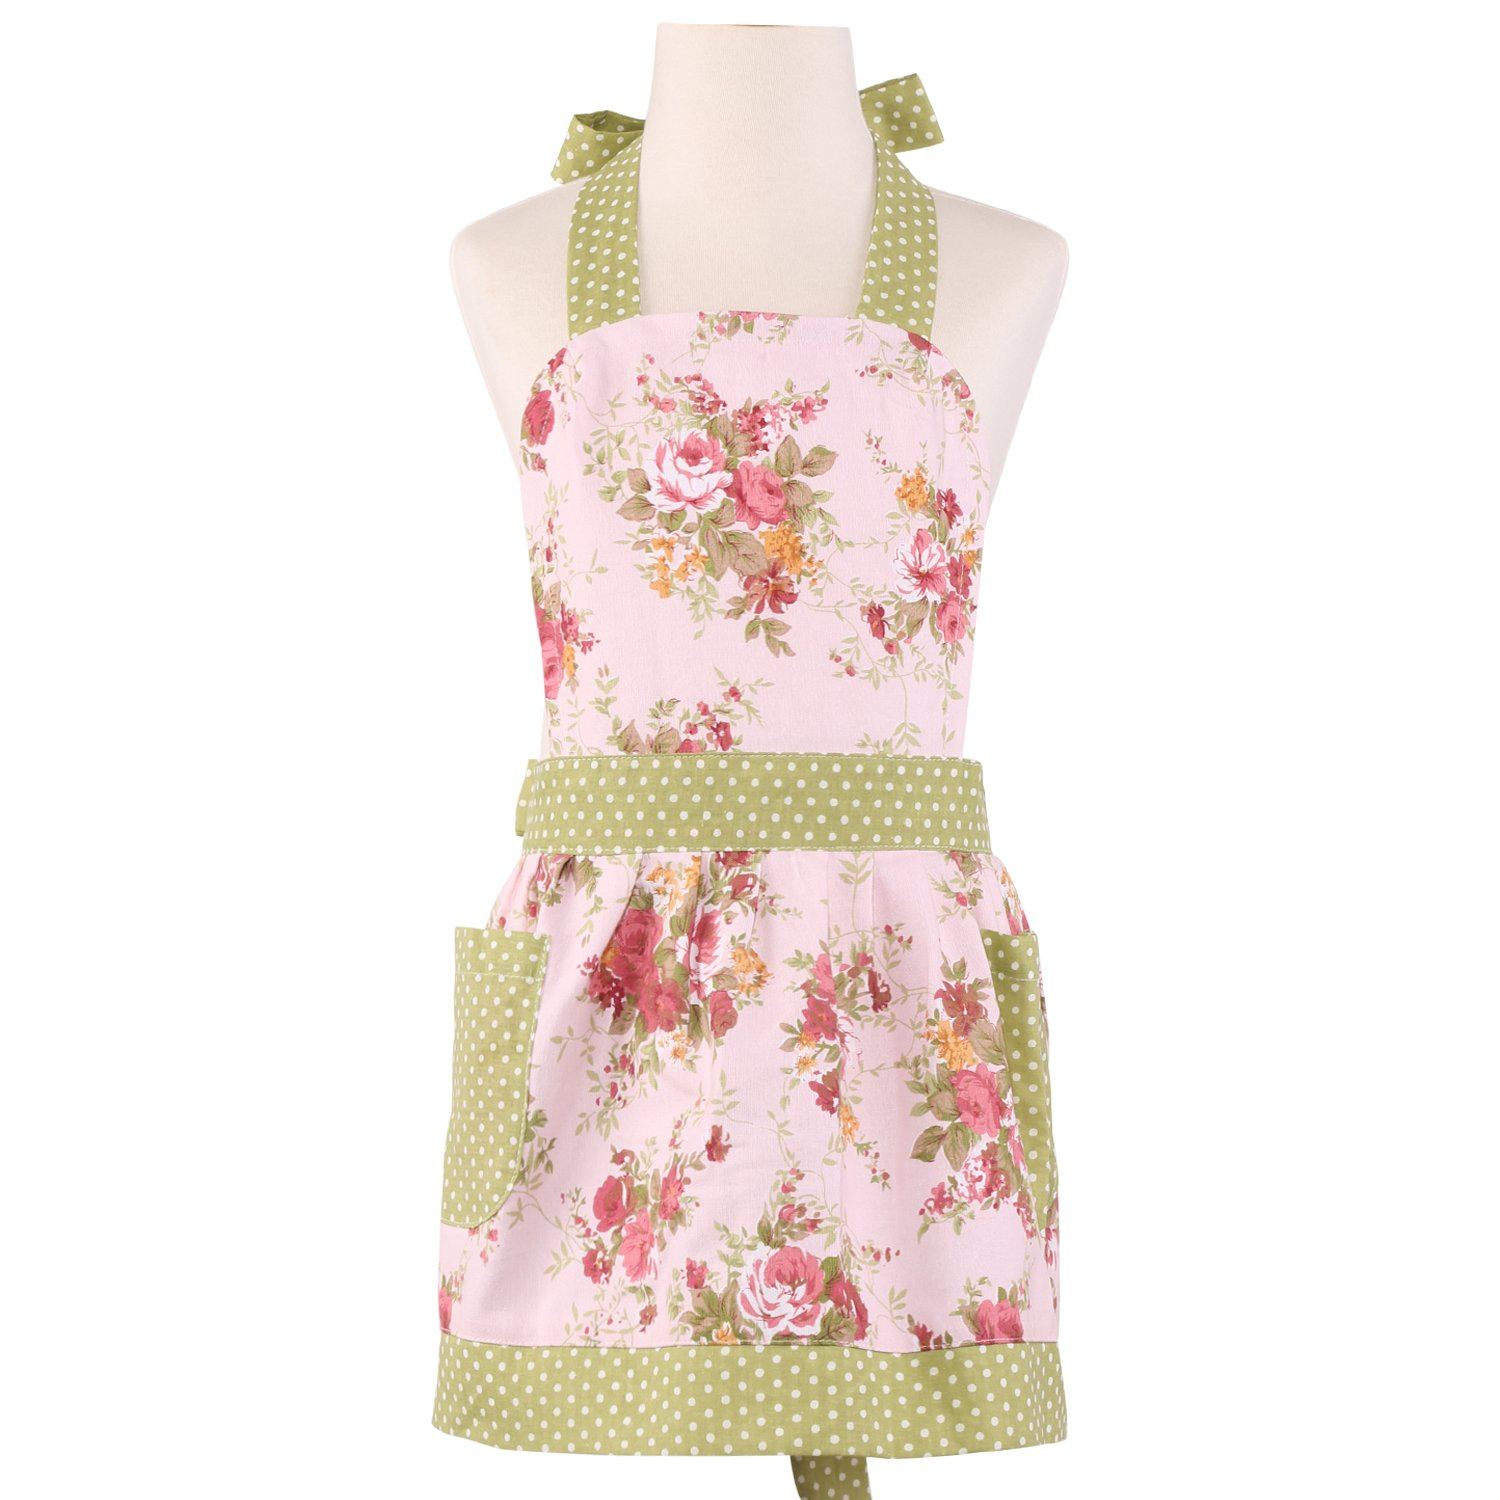 NEOVIVA Children Aprons for Kids Cooking, Baking, BBQ and Gardening, Heavy Duty Kids Aprons with Pockets for Little Curious Chef, Style Diana, Floral Quartz Pink